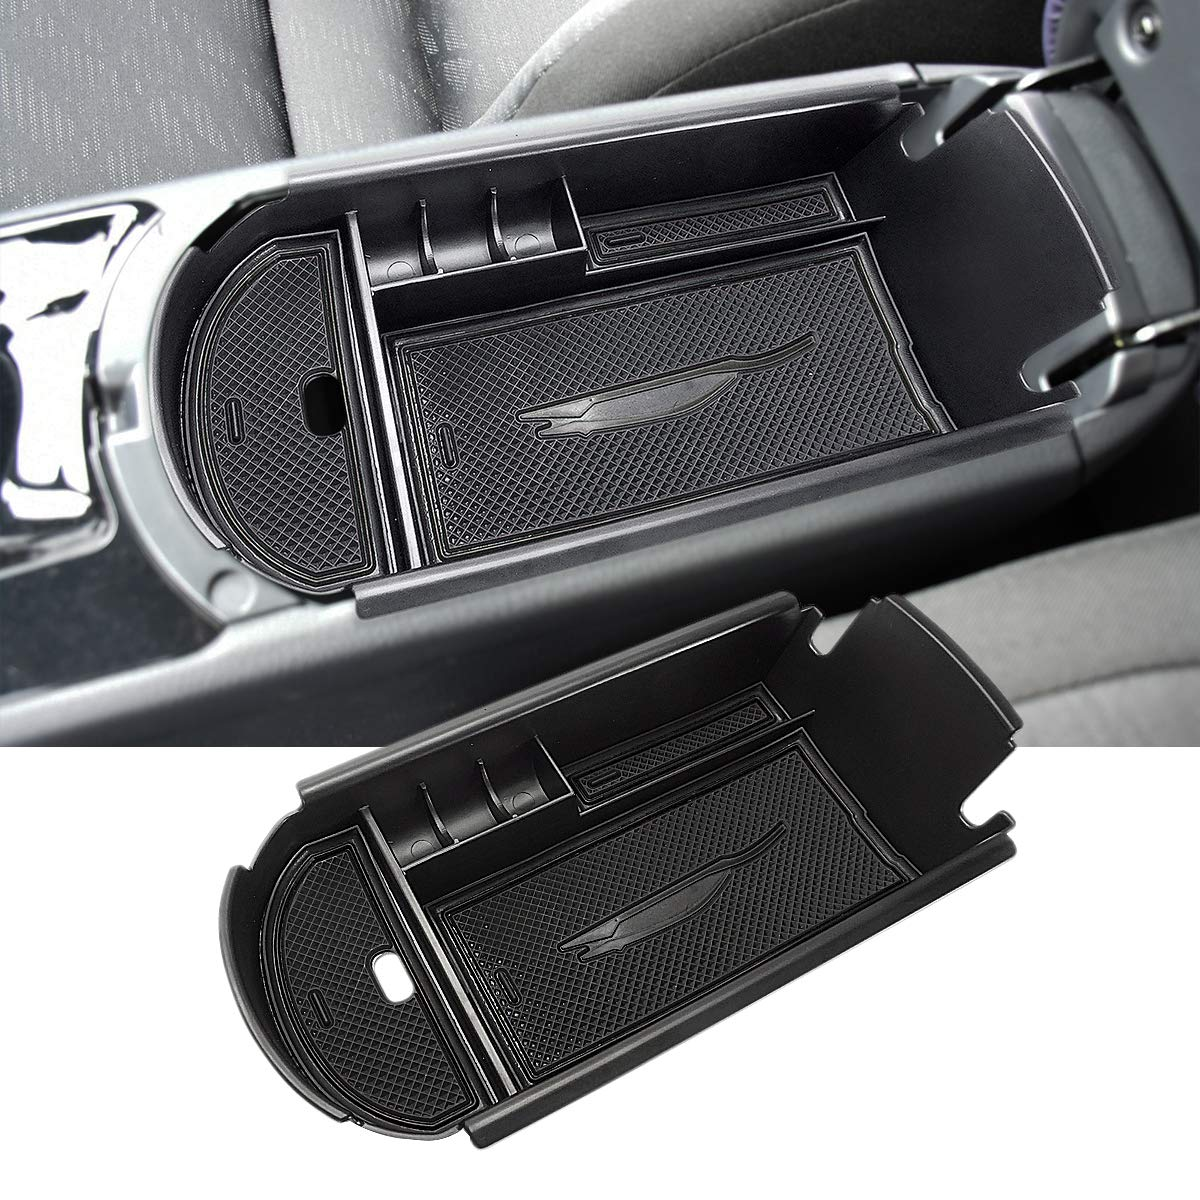 MLING Car Center Console Organizer Armrest Box Secondary Storage Compatible for C-HR 2016 2017 2018 Black